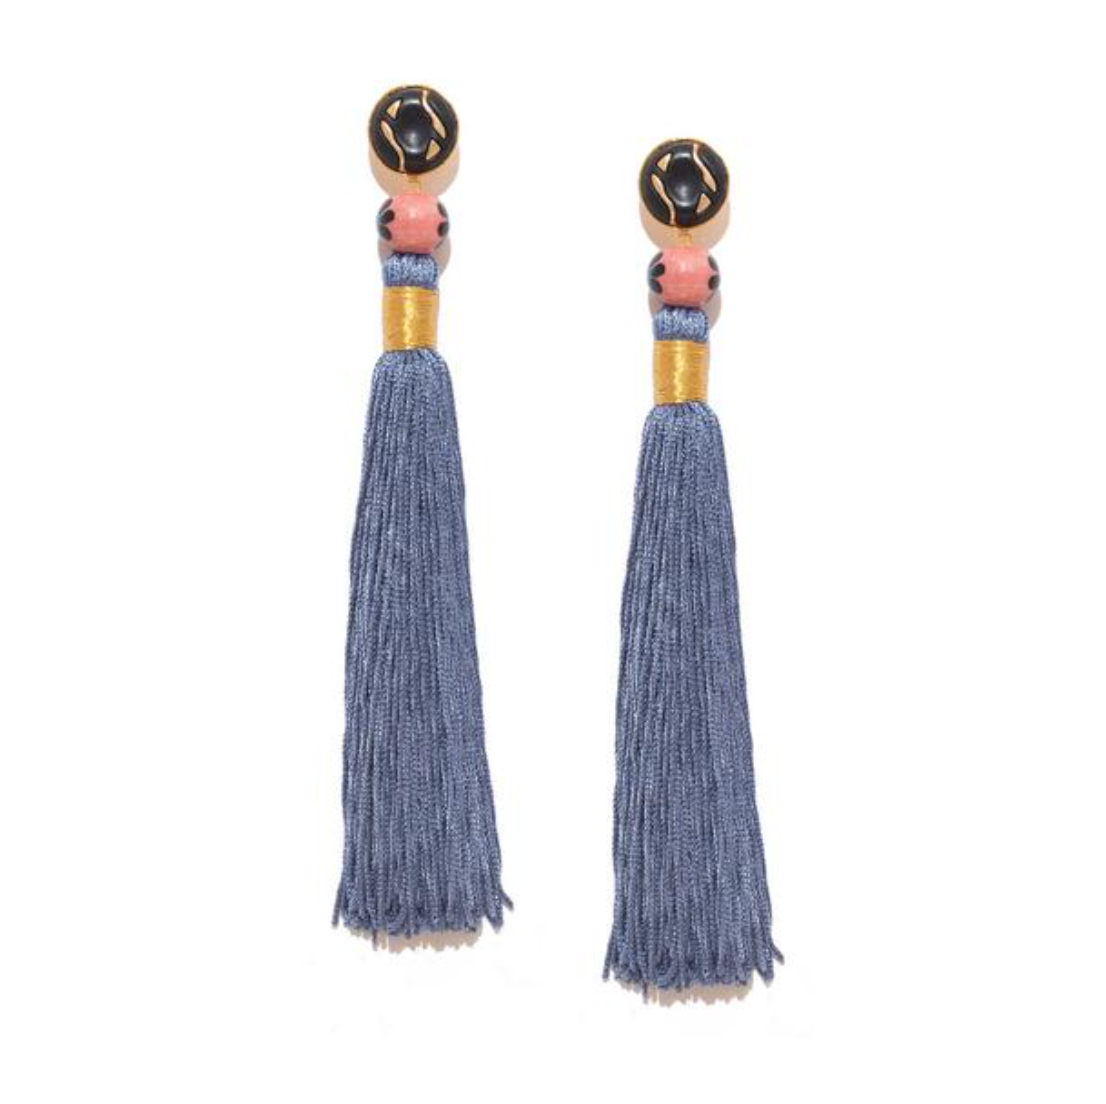 Silk Tassel Shoulder Duster Earrings in Gray